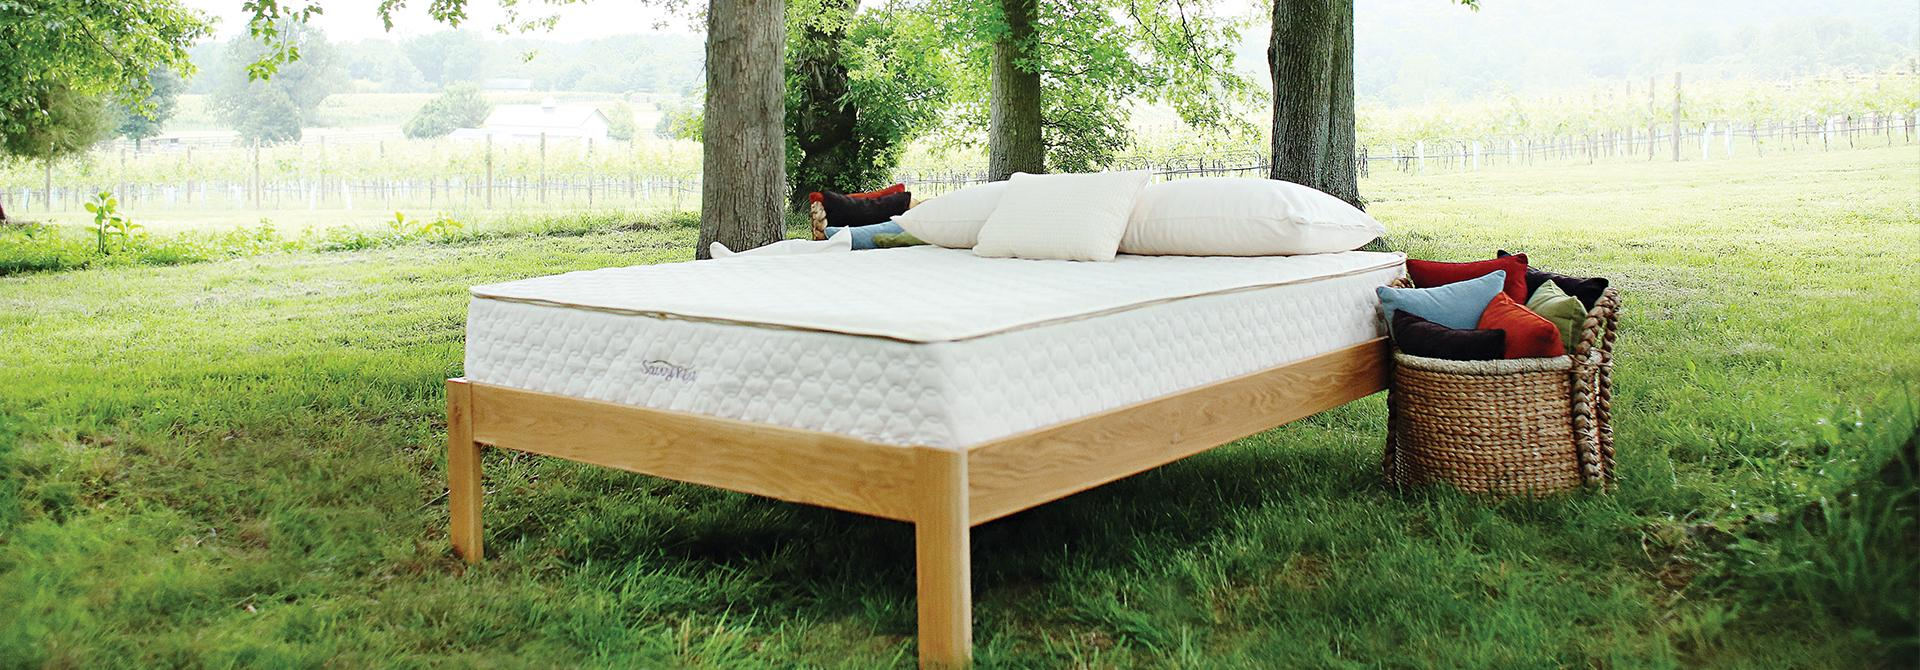 Best Organic Mattress Reviews by www.snoremagazine.com